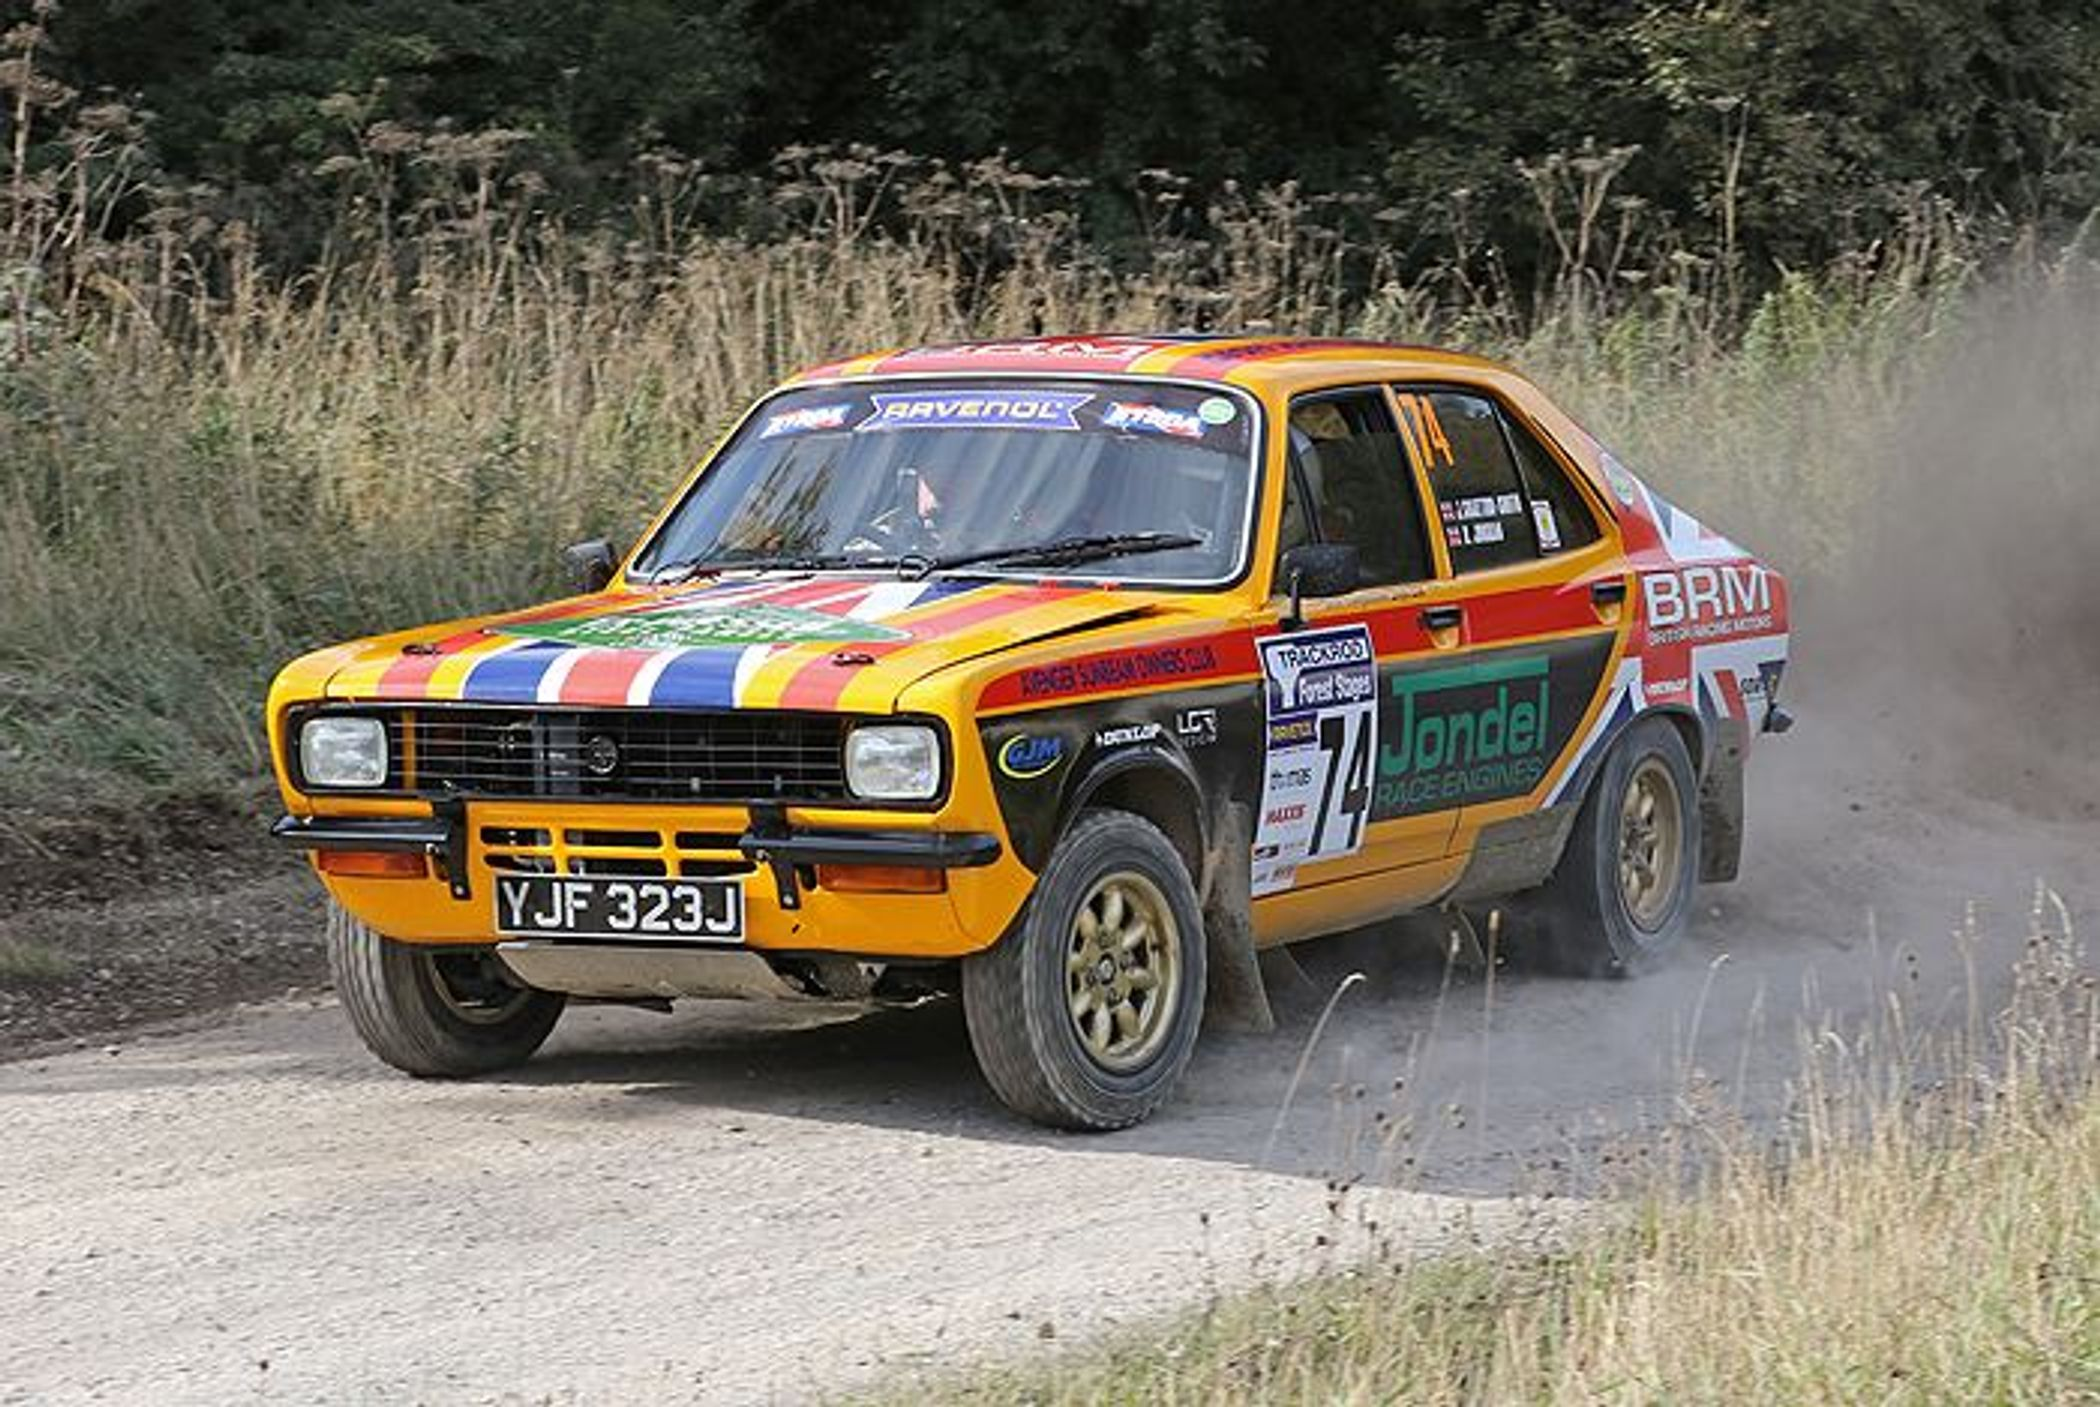 Tickets Now On Sale For All Days Of Rac Rally Historicracingnews Com